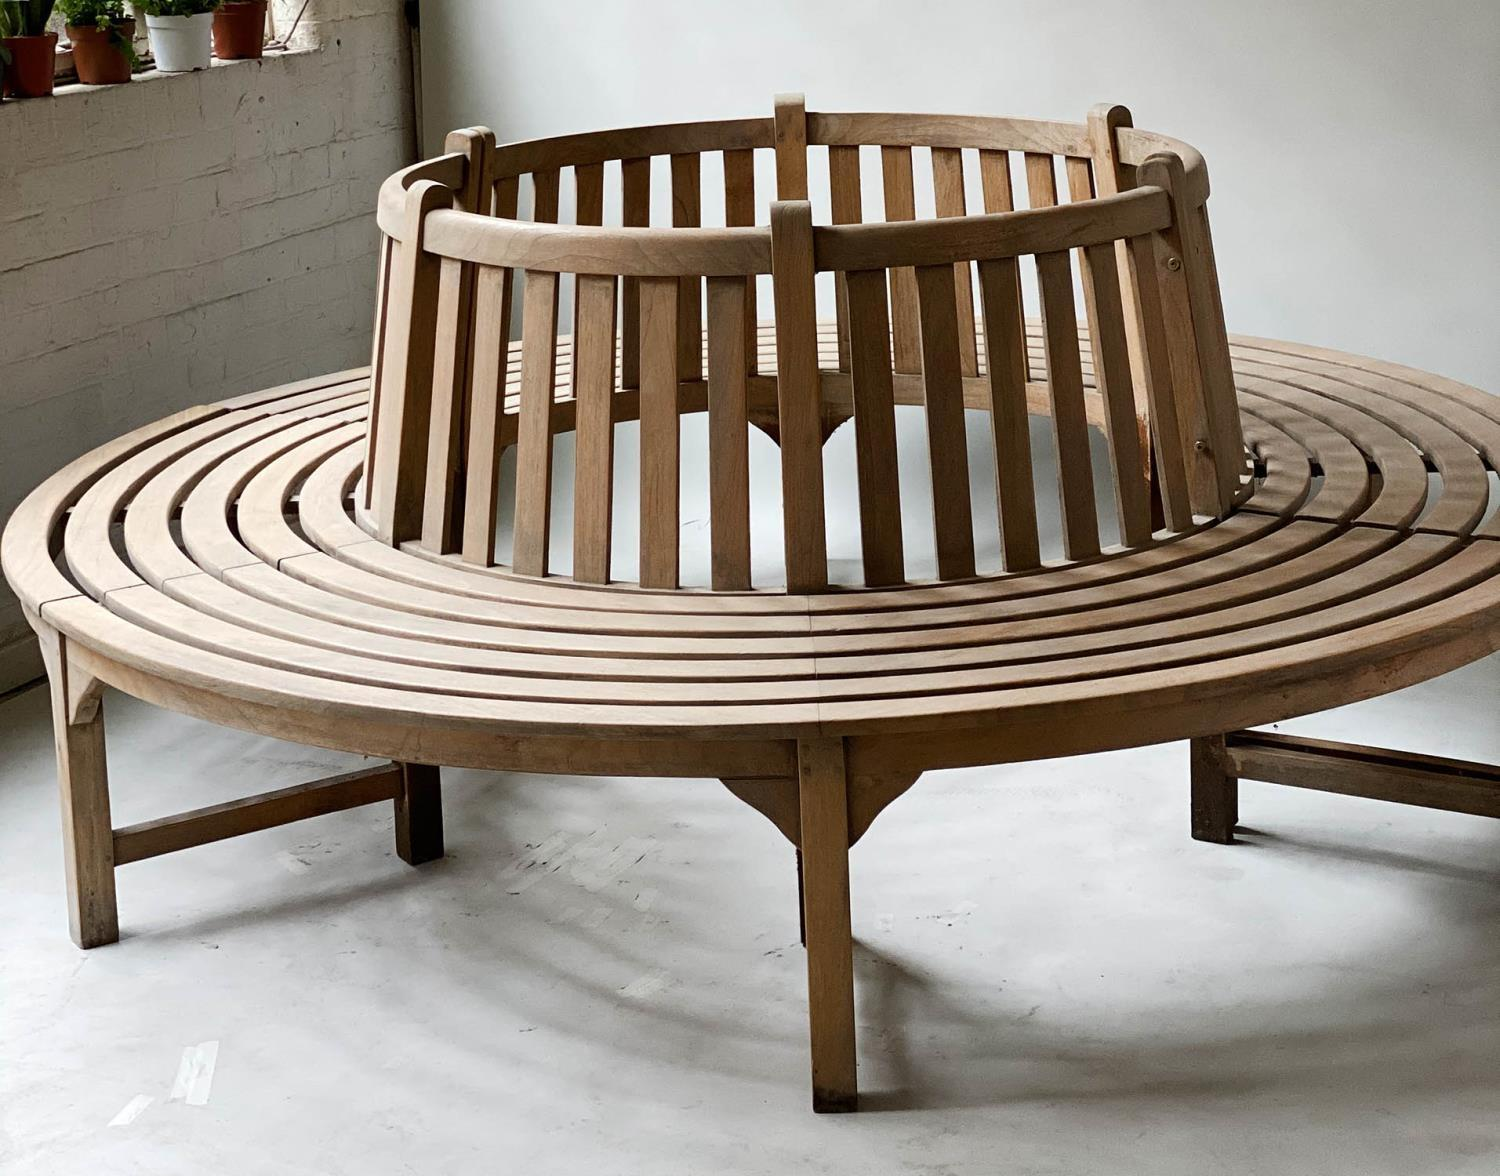 TREE BENCH, weathered teak and slatted in two sections of concentric slats and raised back rest, - Image 5 of 7